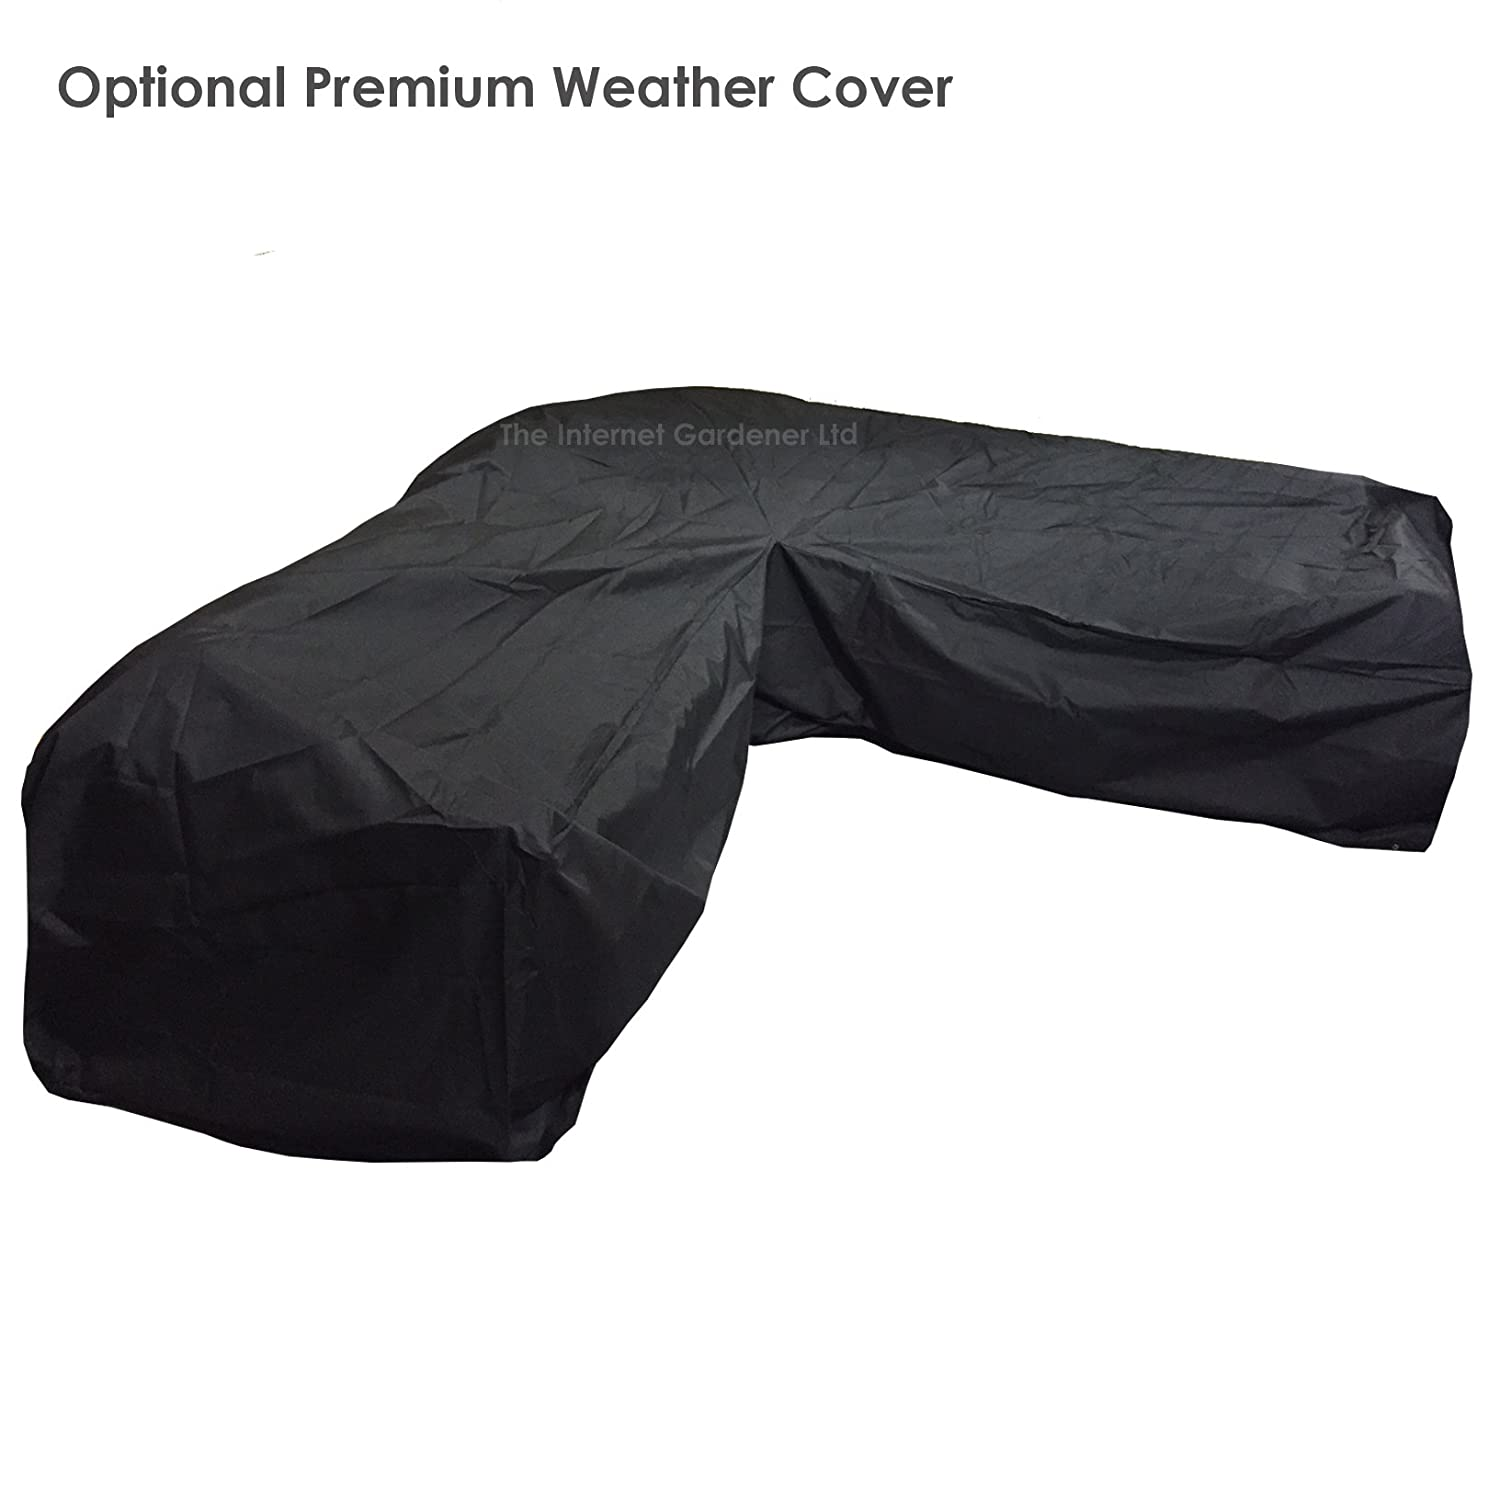 Delightful High Quality Black Outdoor U0027Lu0027 Shaped Rattan Corner Sofa Weather Cover:  Amazon.co.uk: Garden U0026 Outdoors Part 27